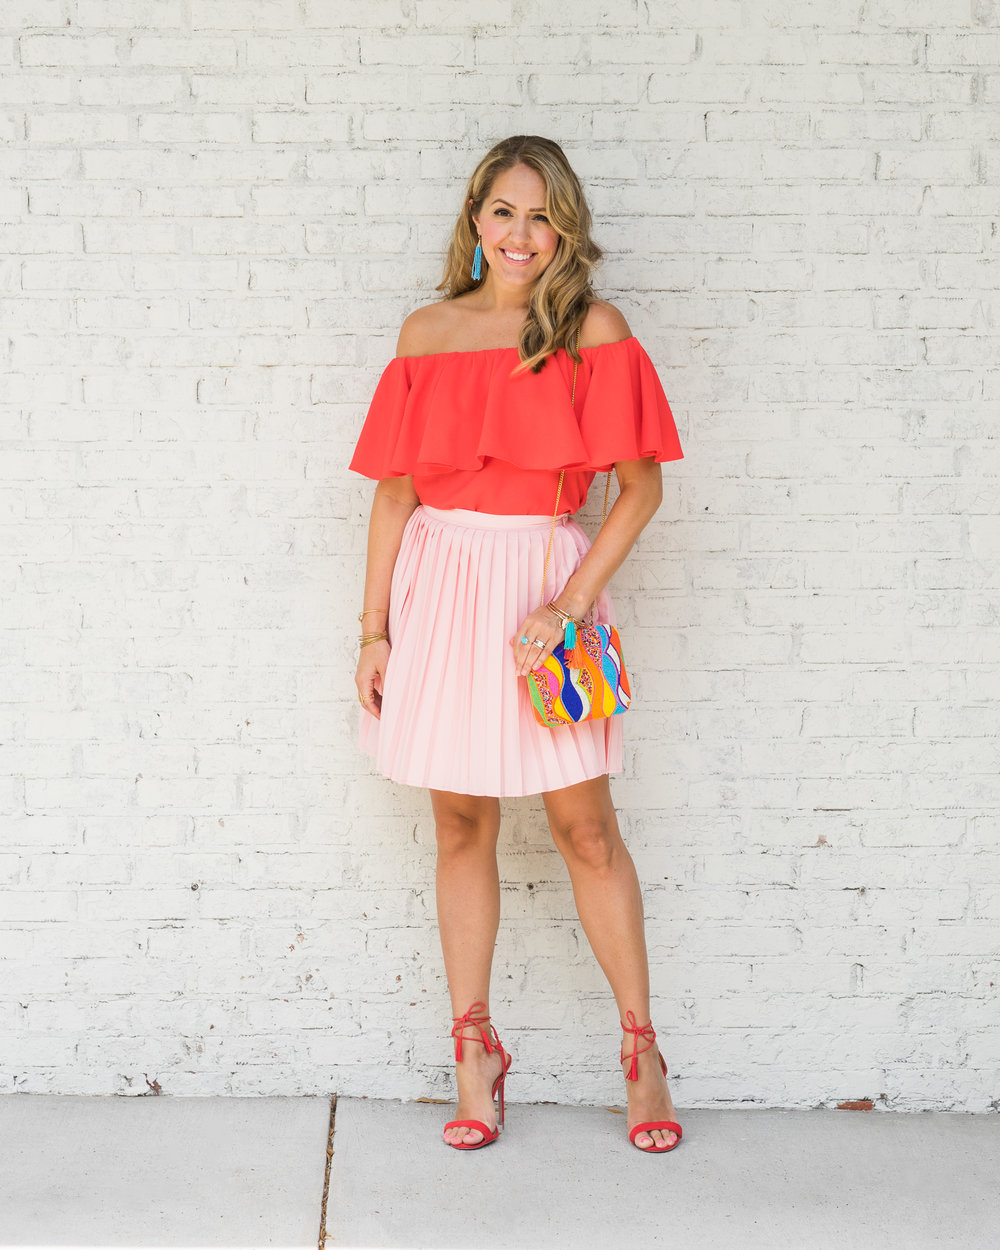 Red ruffle top, peach pleated skirt, colorful clutch